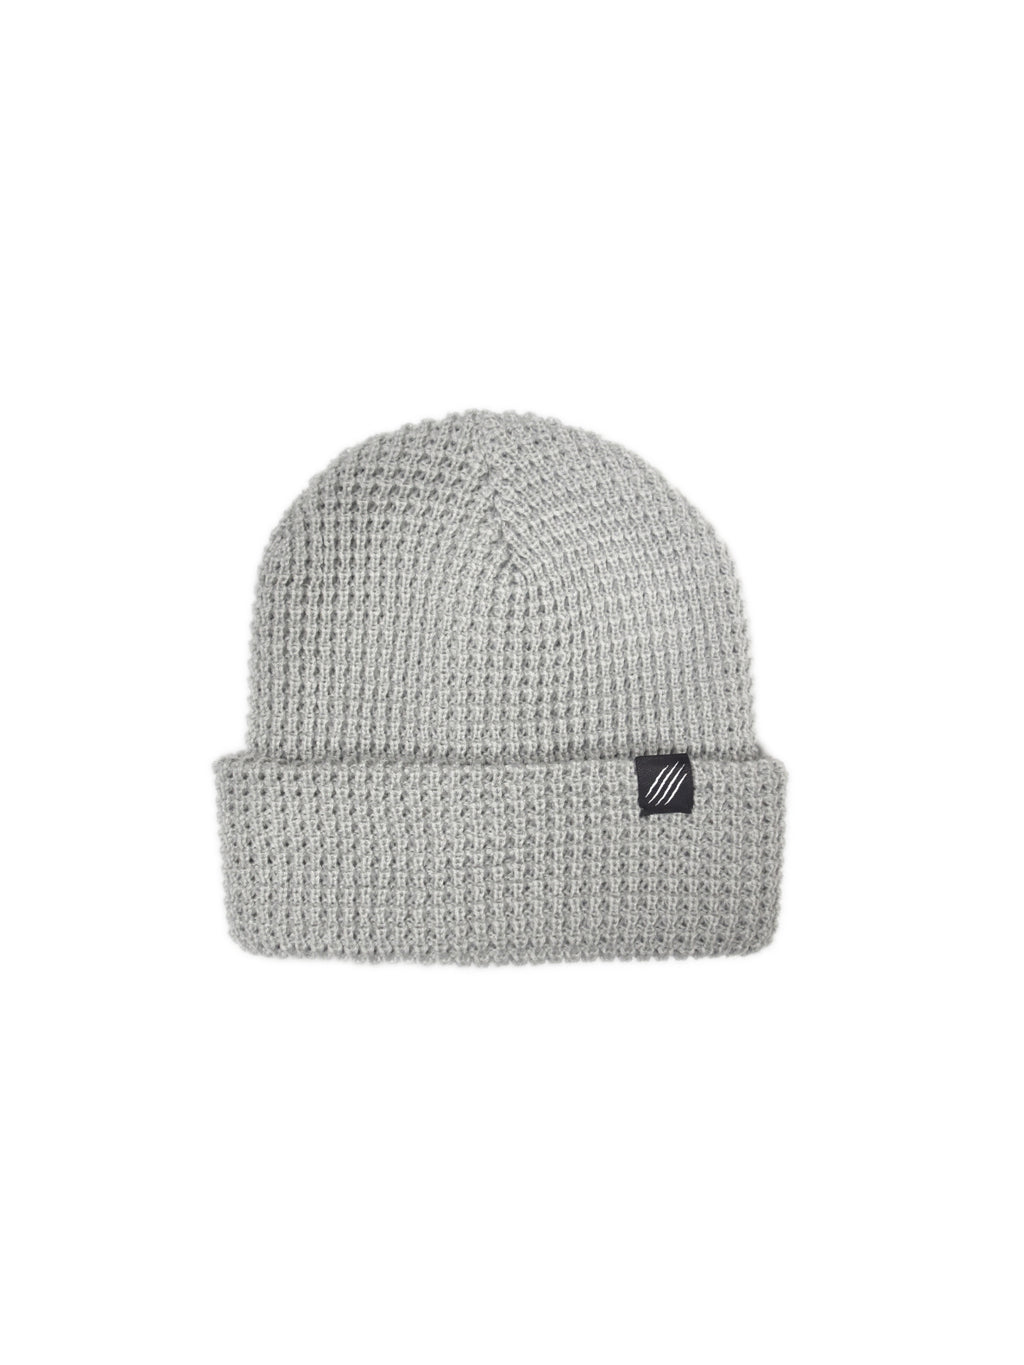 FISHERMAN BEANIE GREY